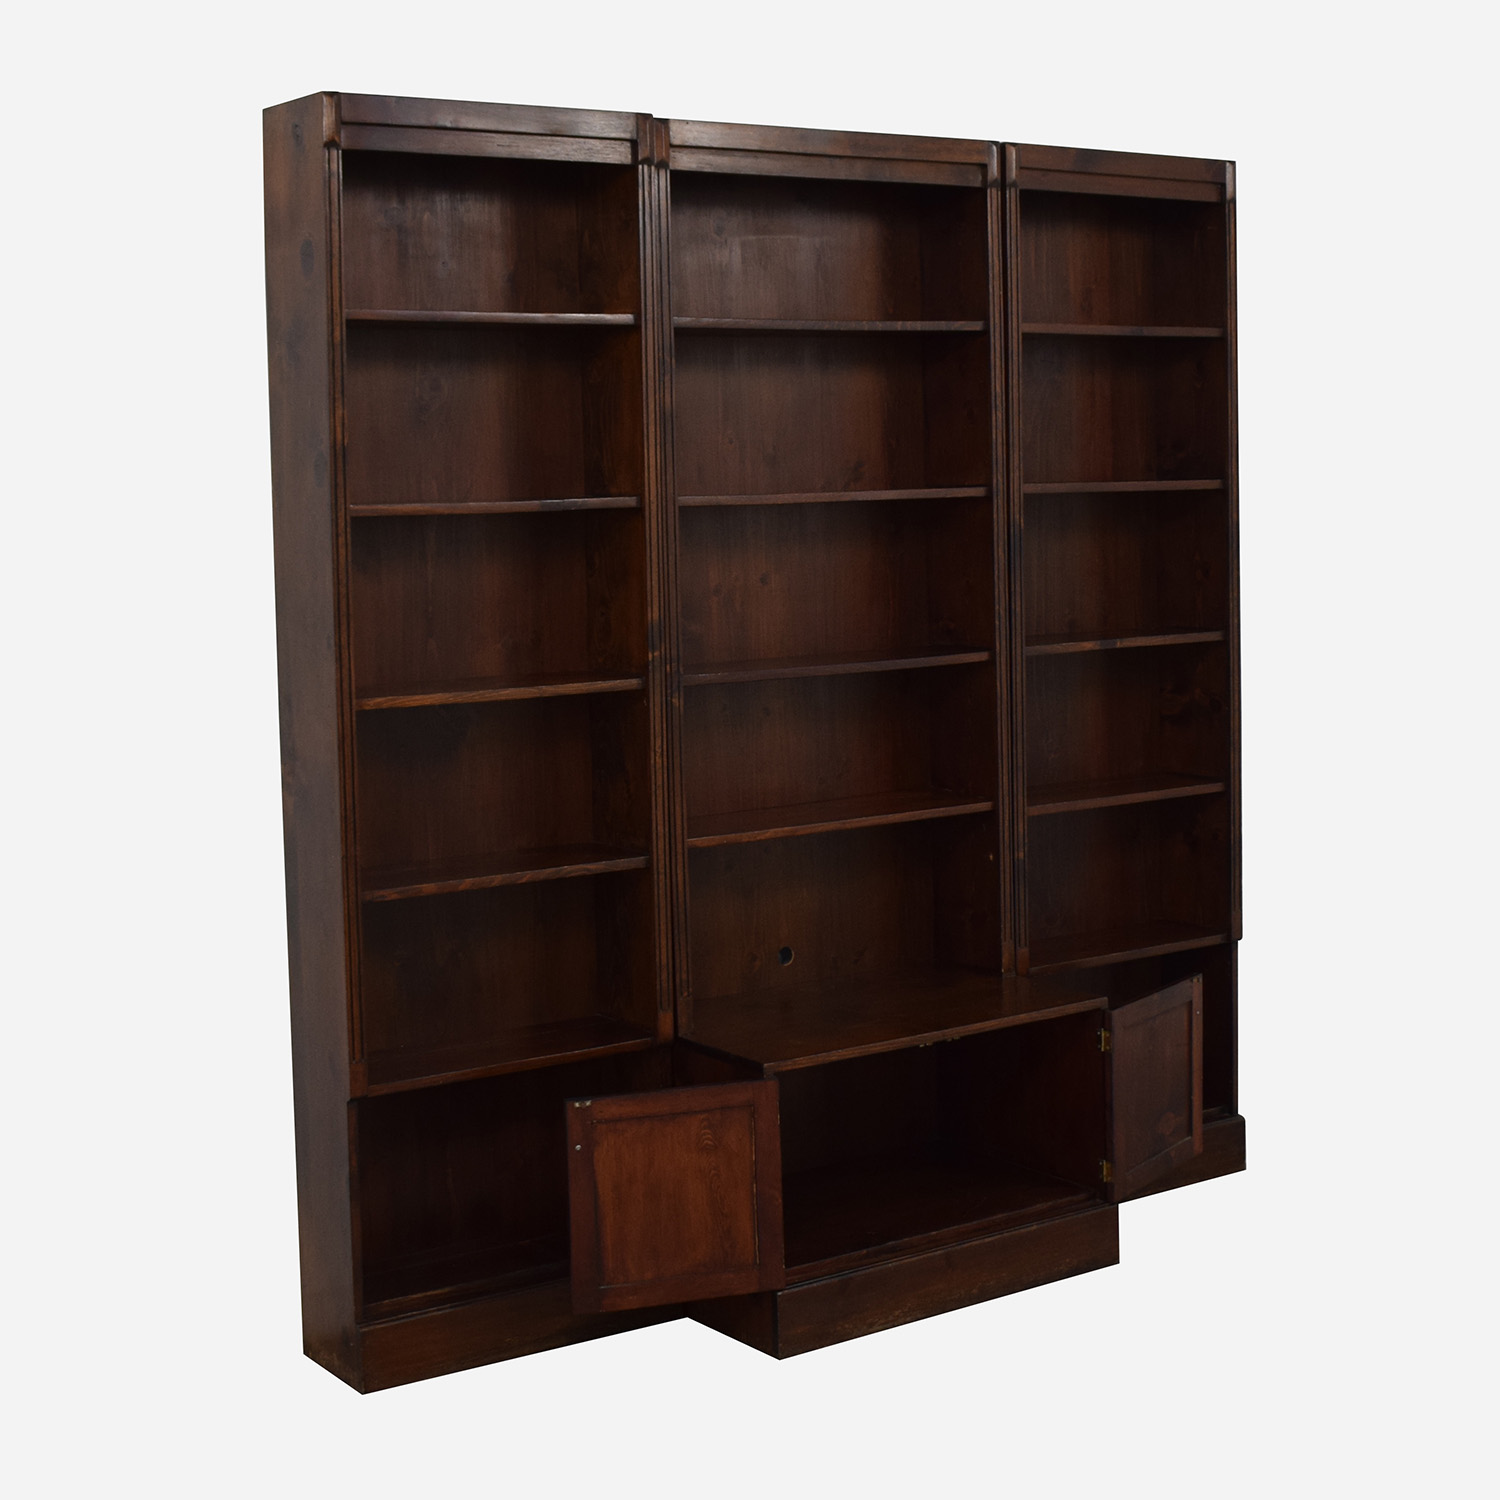 Three Bookshelves With Cabinet / Bookcases & Shelving